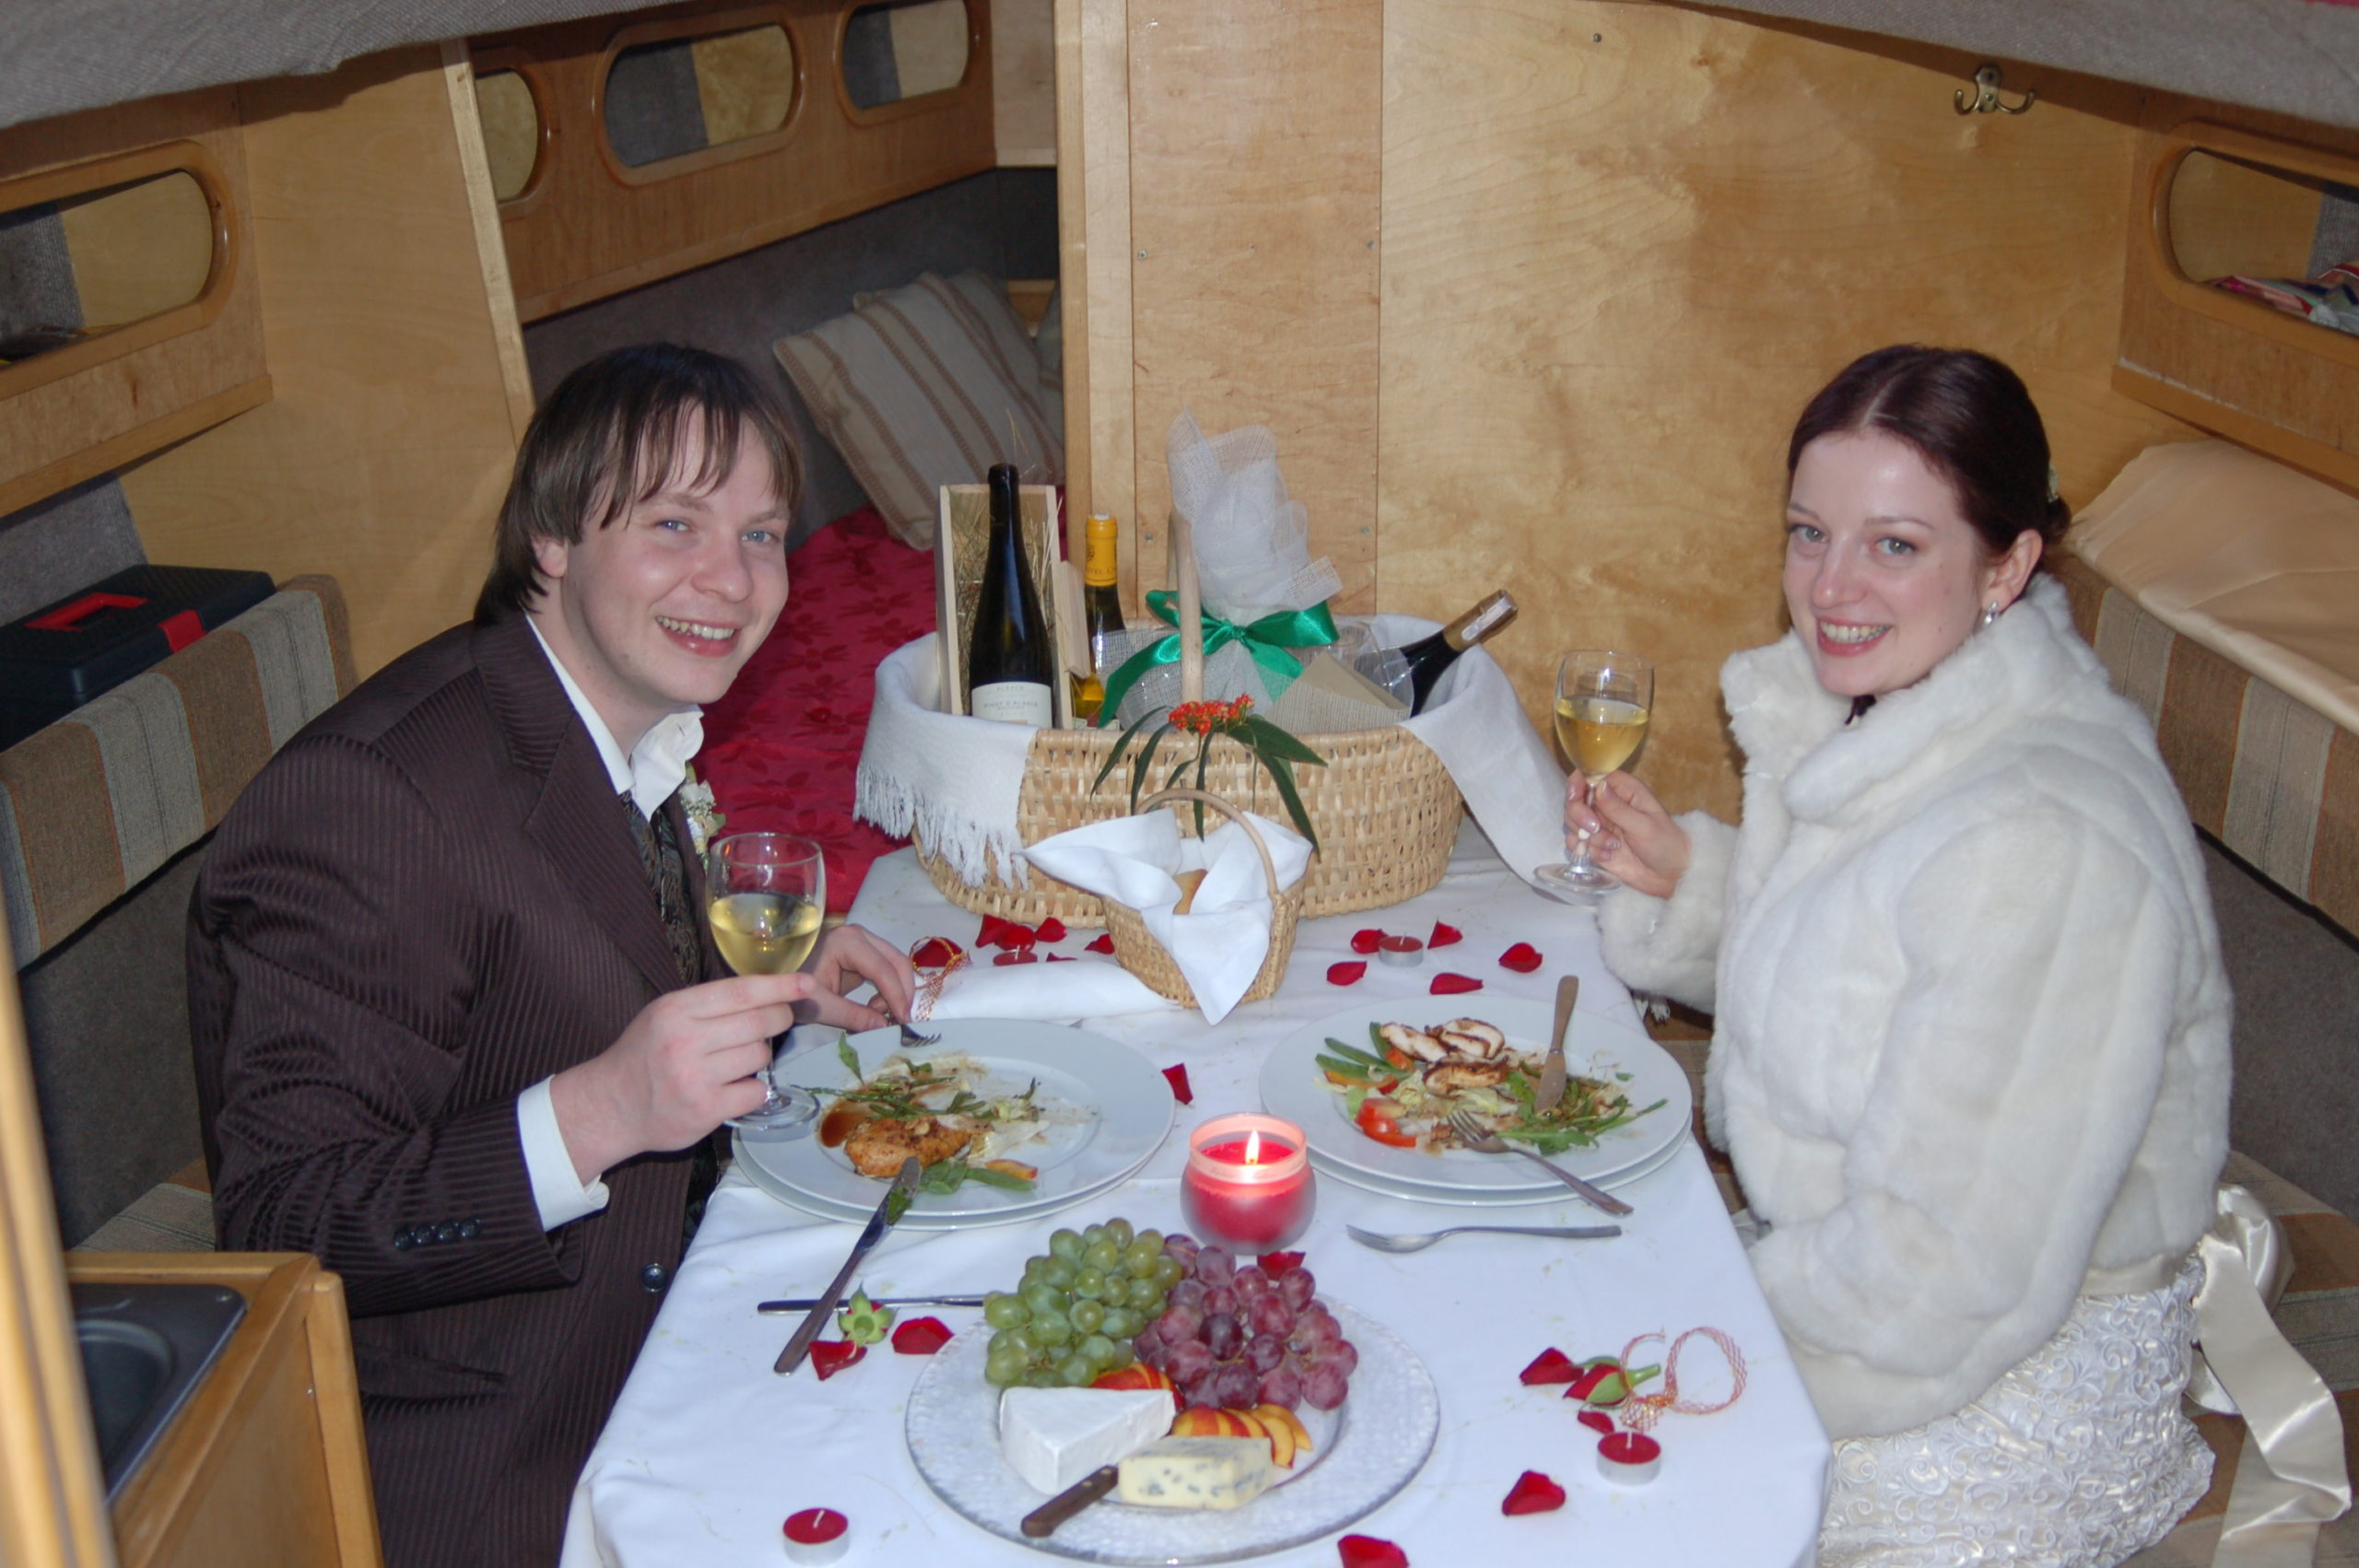 A wedding dinner on a boat